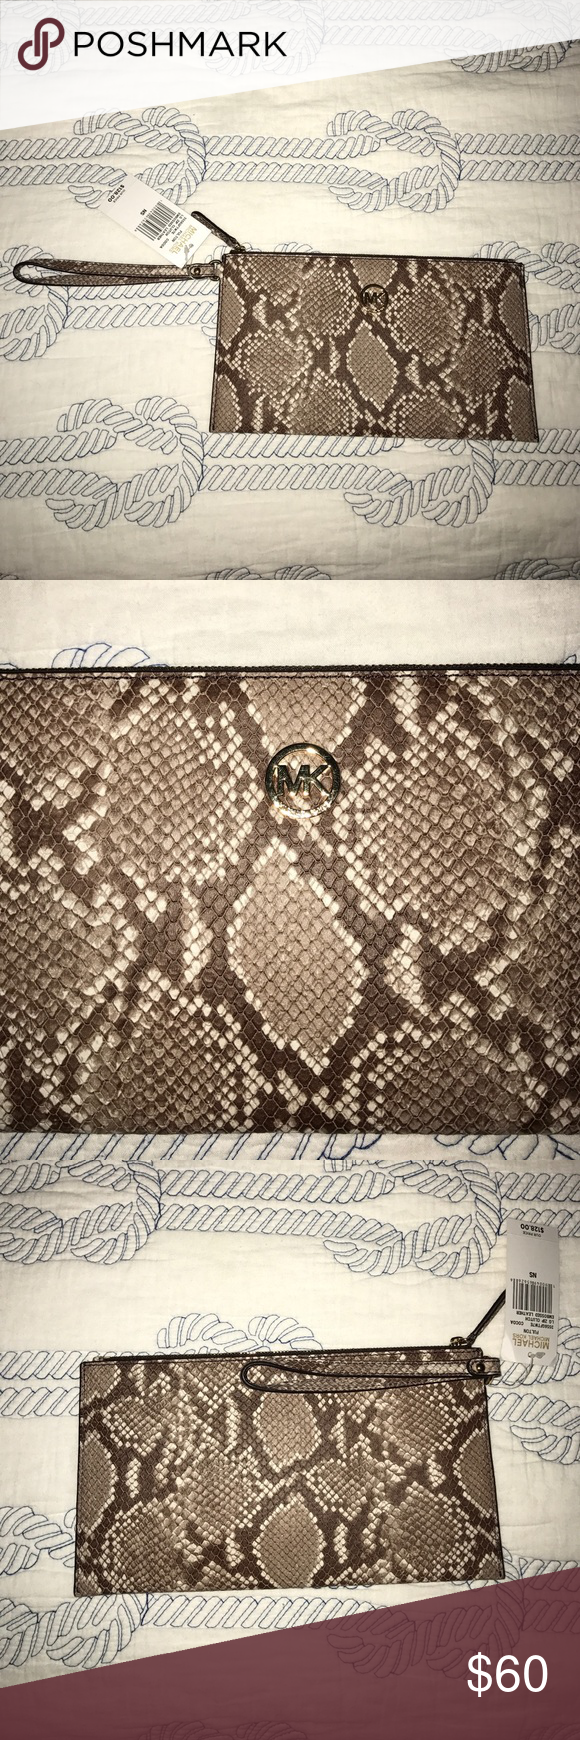 Michael Kors Snake Print Leather Wristlet Adorable snake print leather wristlet from Michael Kors! Perfect for a day or night one with plenty of room for a phone and other items, as well as spaces for cards on the inside! NWT. Michael Kors Bags Clutches & Wristlets